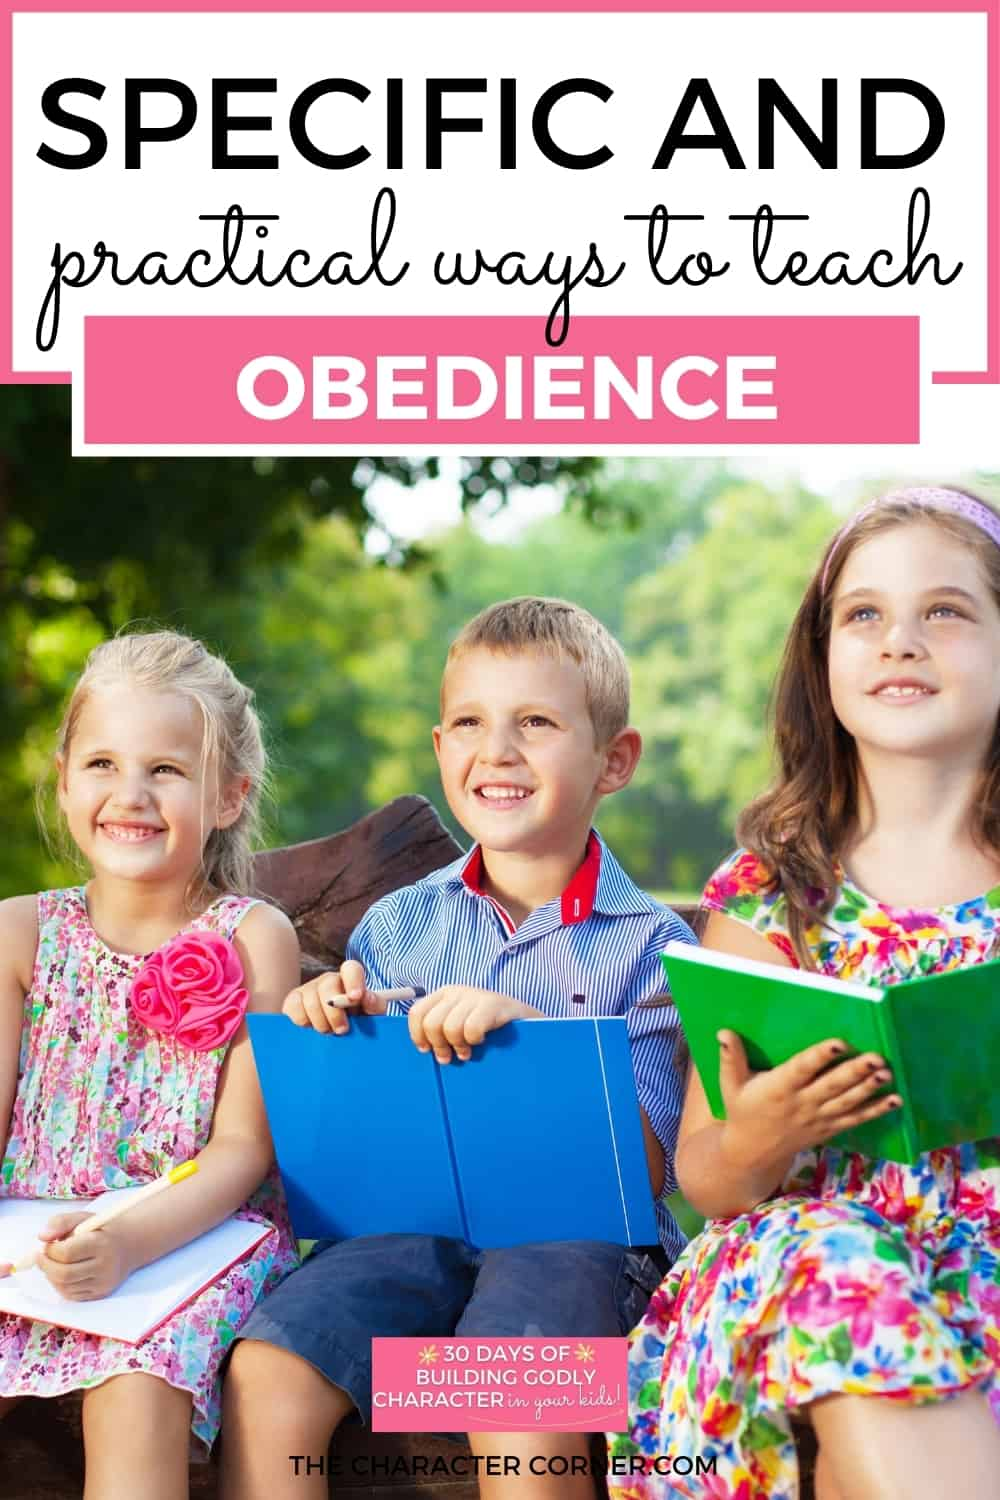 Kids being obedient text on image reads: Specific and Practical Ways to Teach Obedience